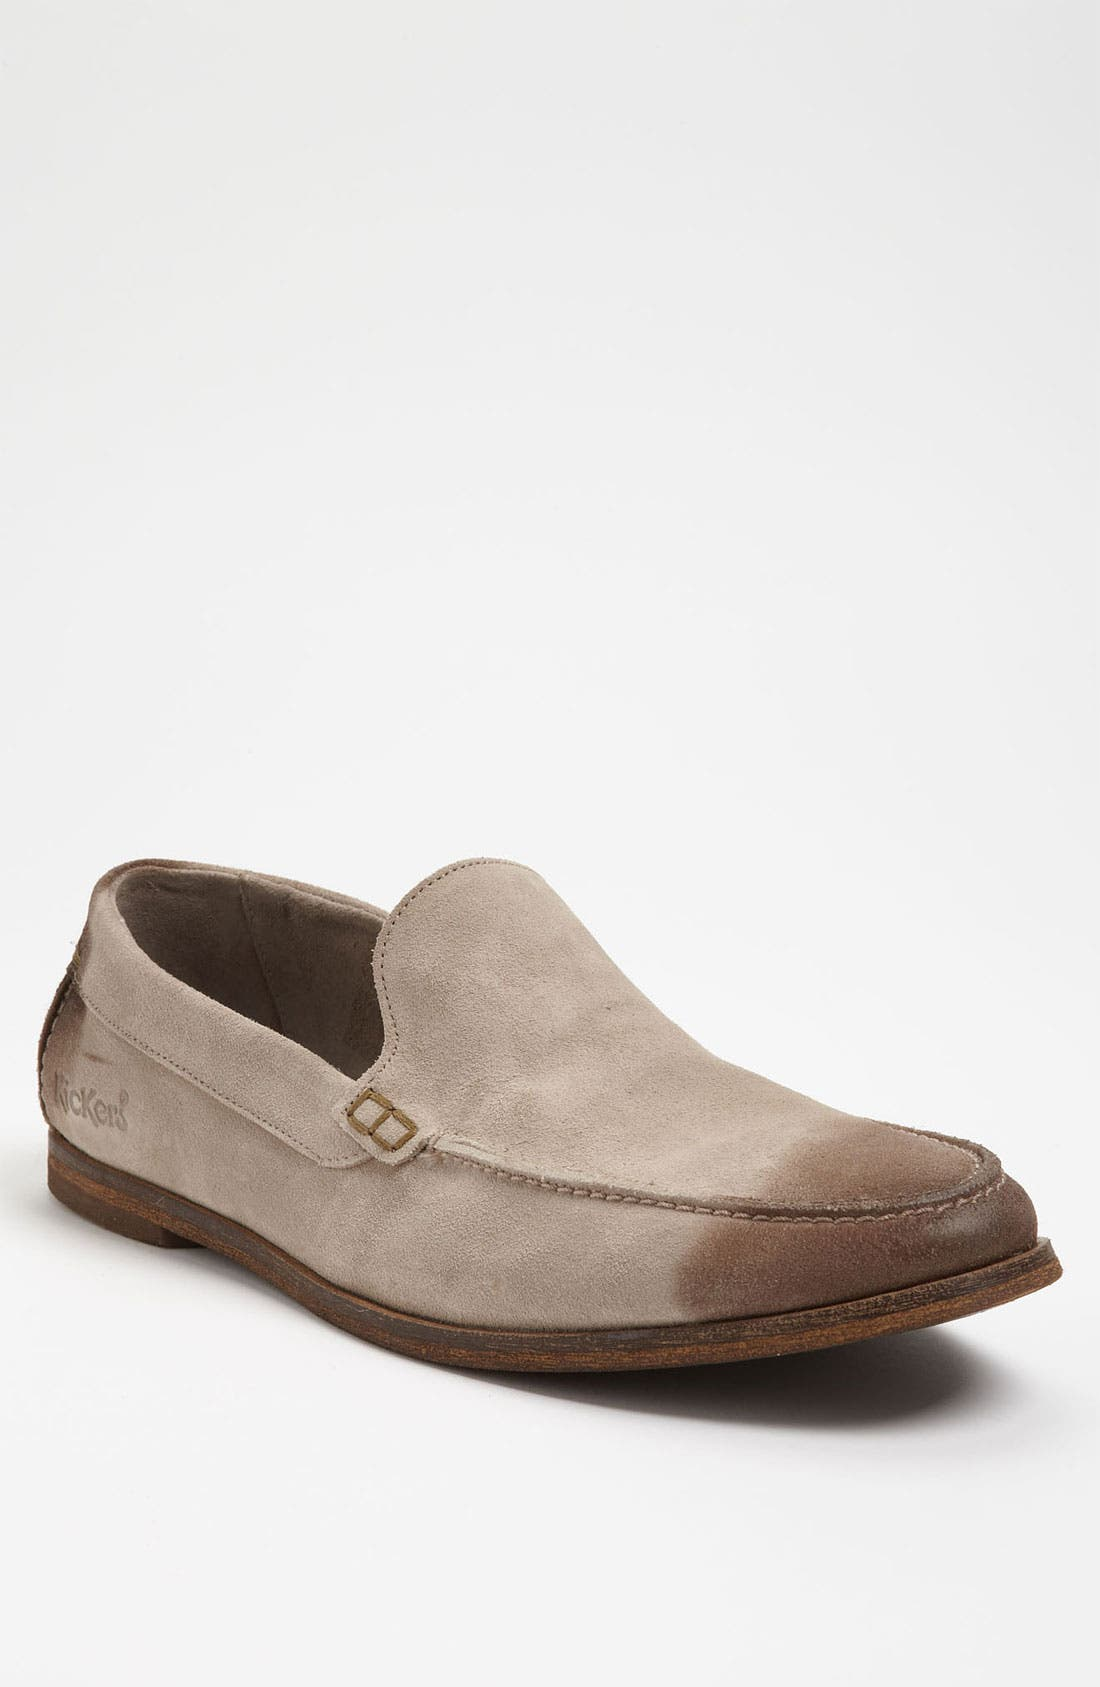 Alternate Image 1 Selected - Kickers 'Ringo' Loafer